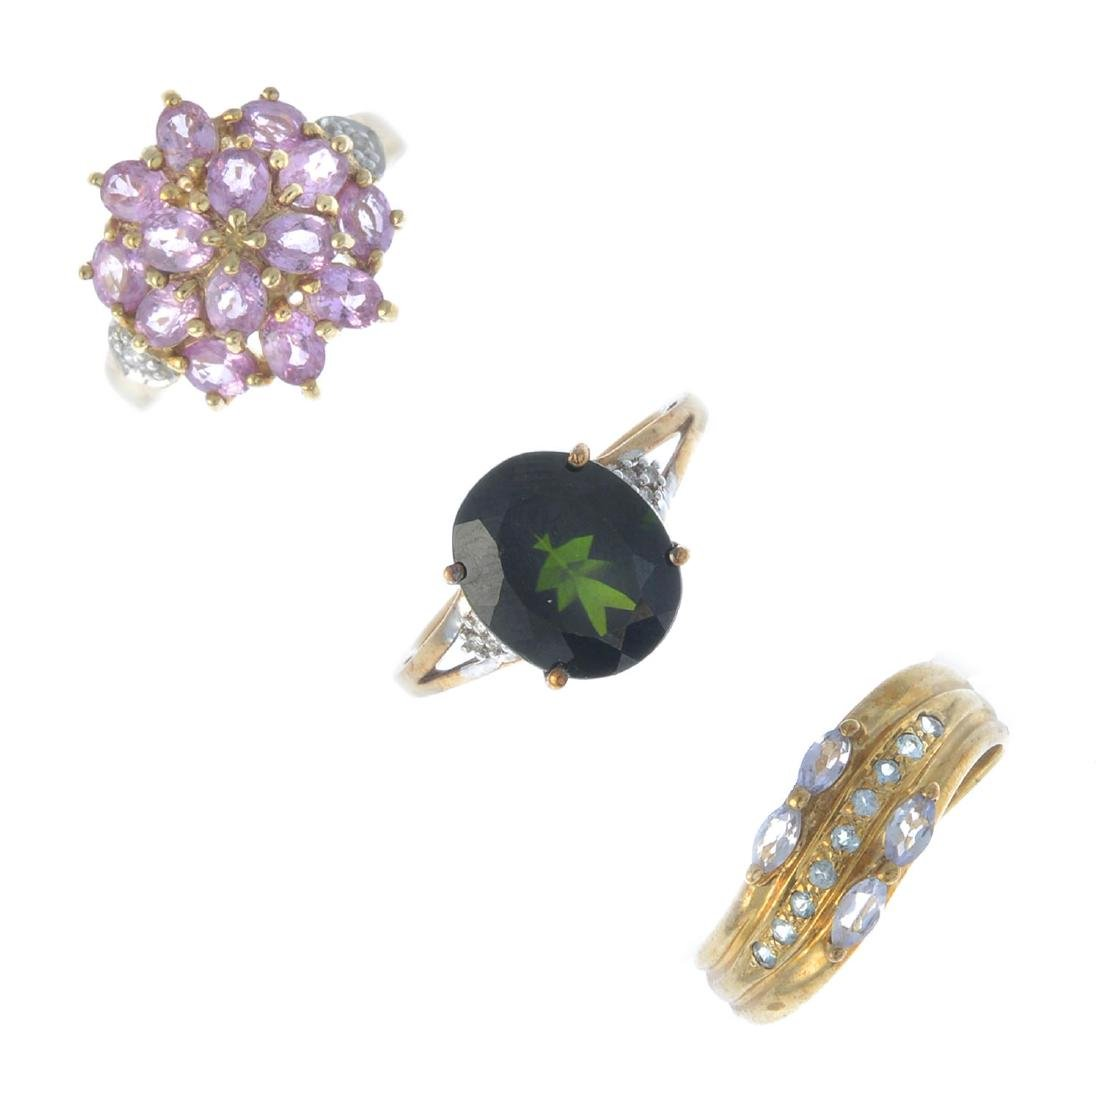 Four 9ct gold gem-set dress rings. To include a pink